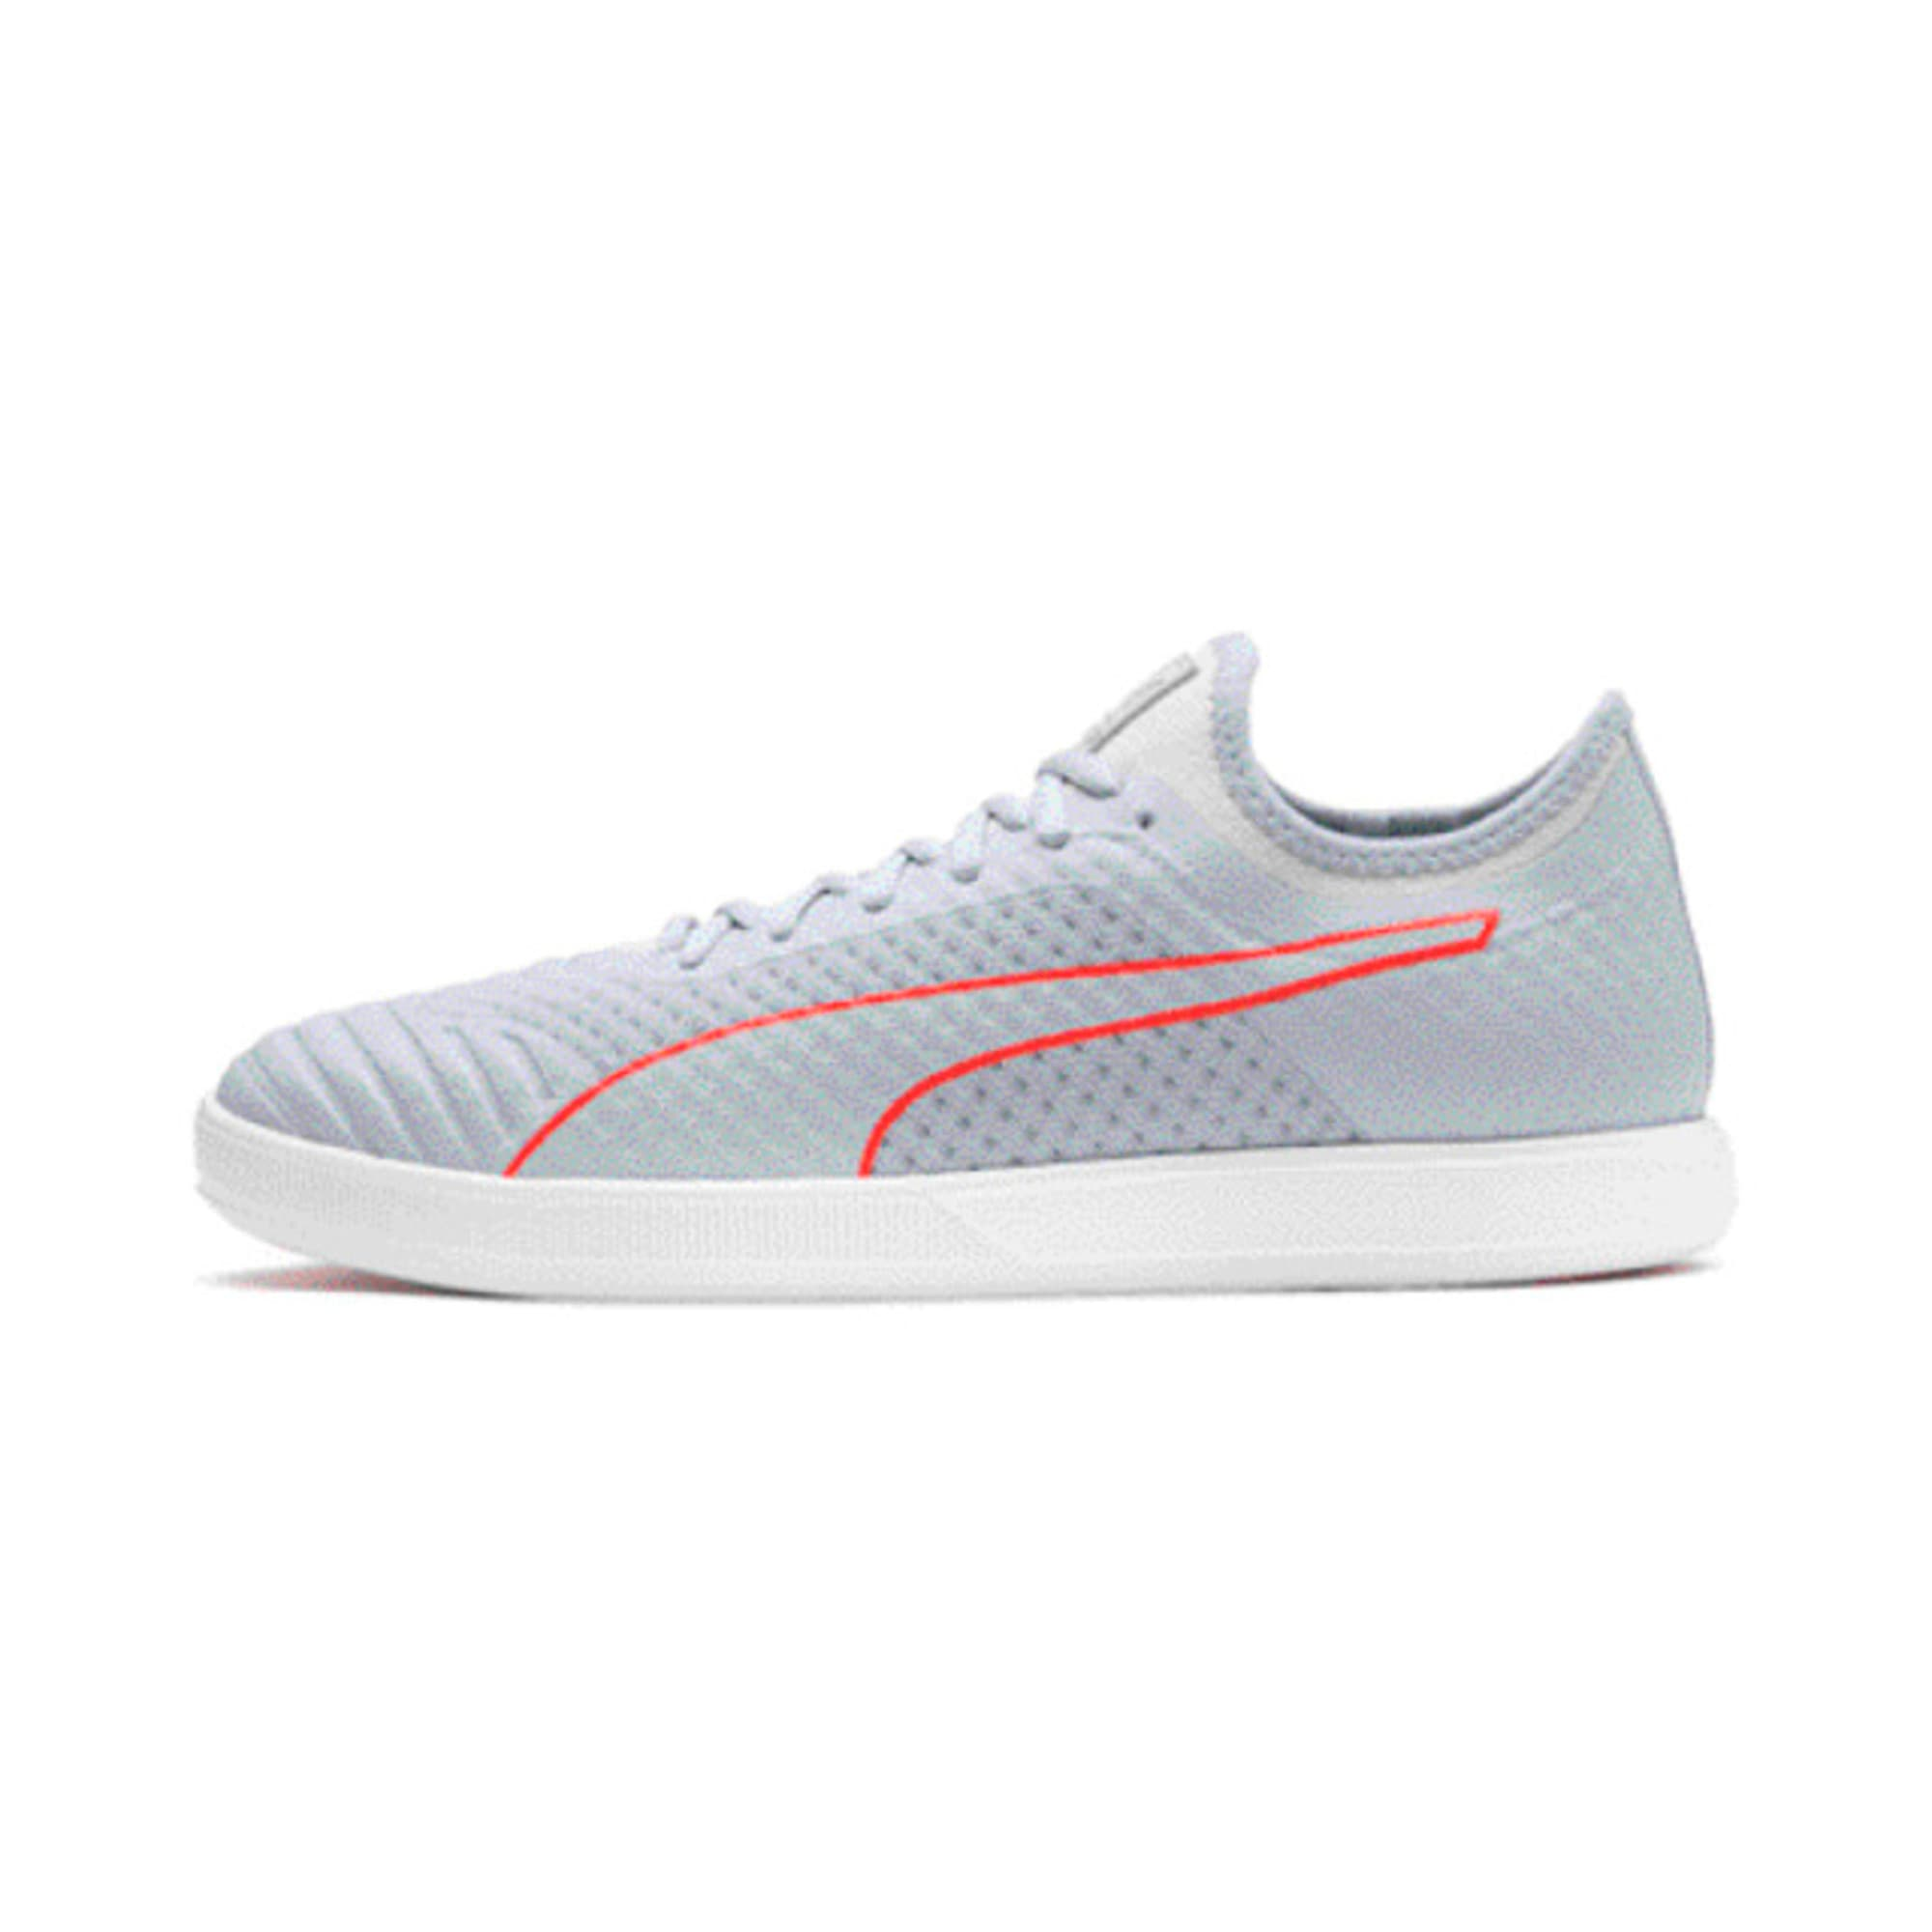 Thumbnail 1 of 365 Concrete Lite Football Boots, Grey Dawn-White-Nrgy Red, medium-IND